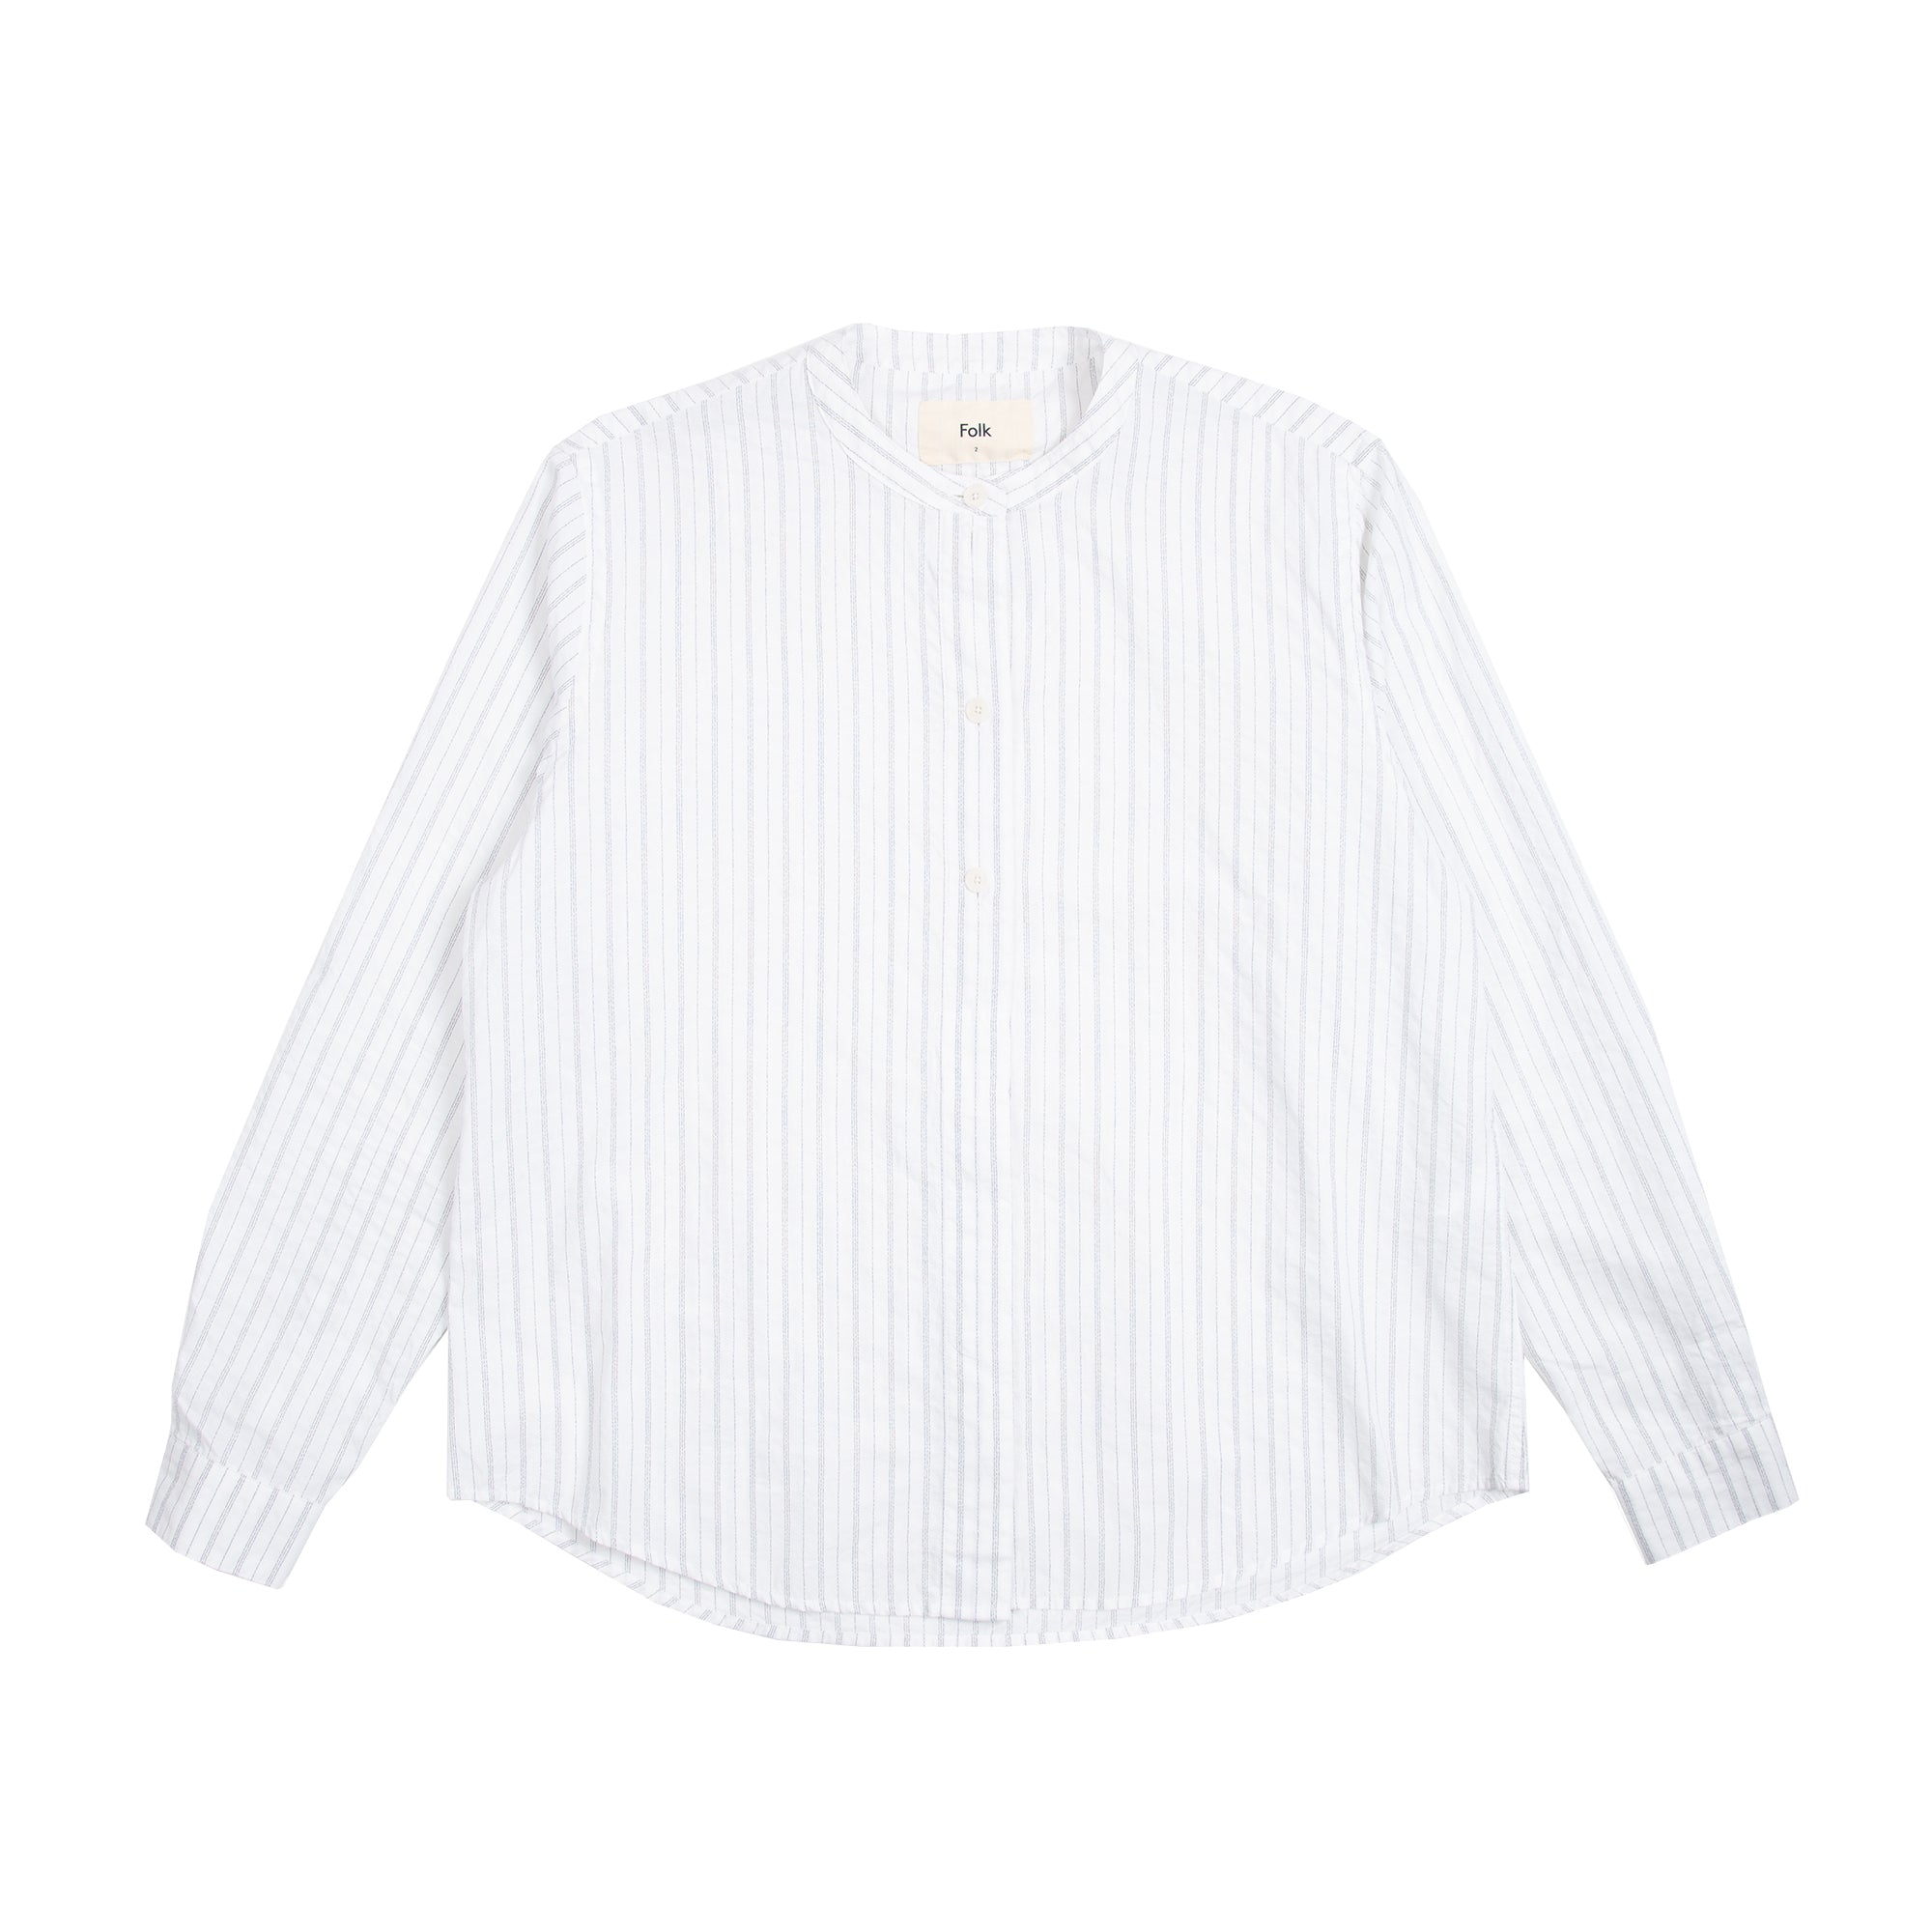 Half Placket Grandad - White Black Texture Stripe